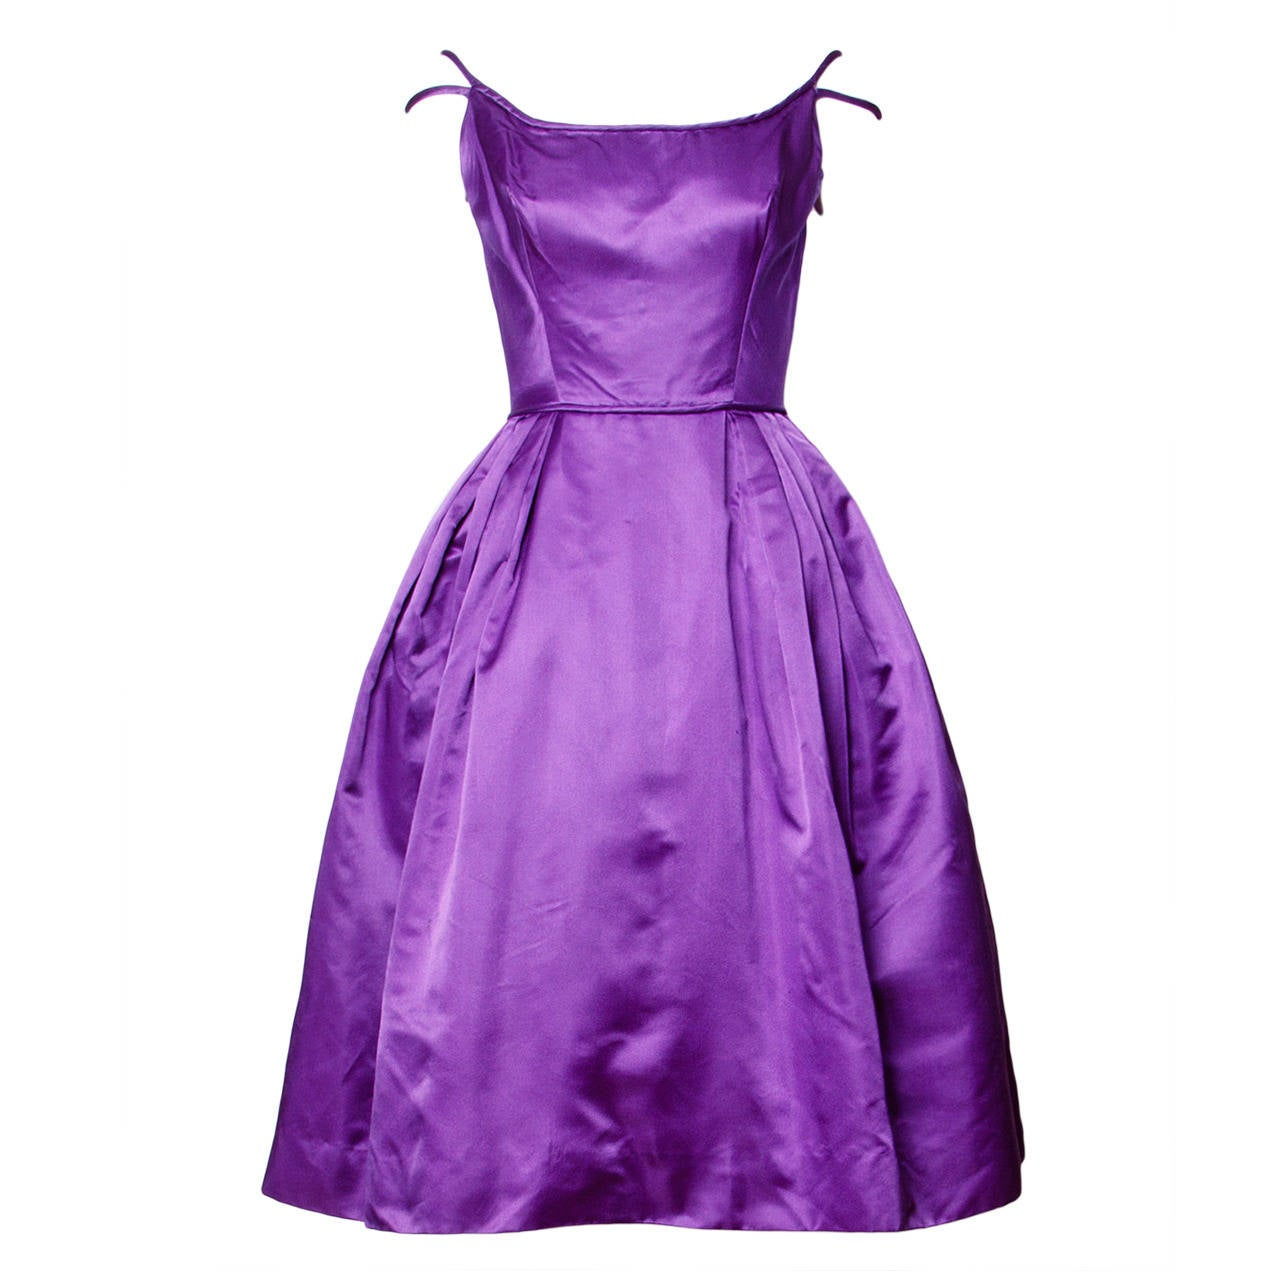 Minuet by Mollie Stone Vintage 1960s Purple Satin Cocktail Dress at ...